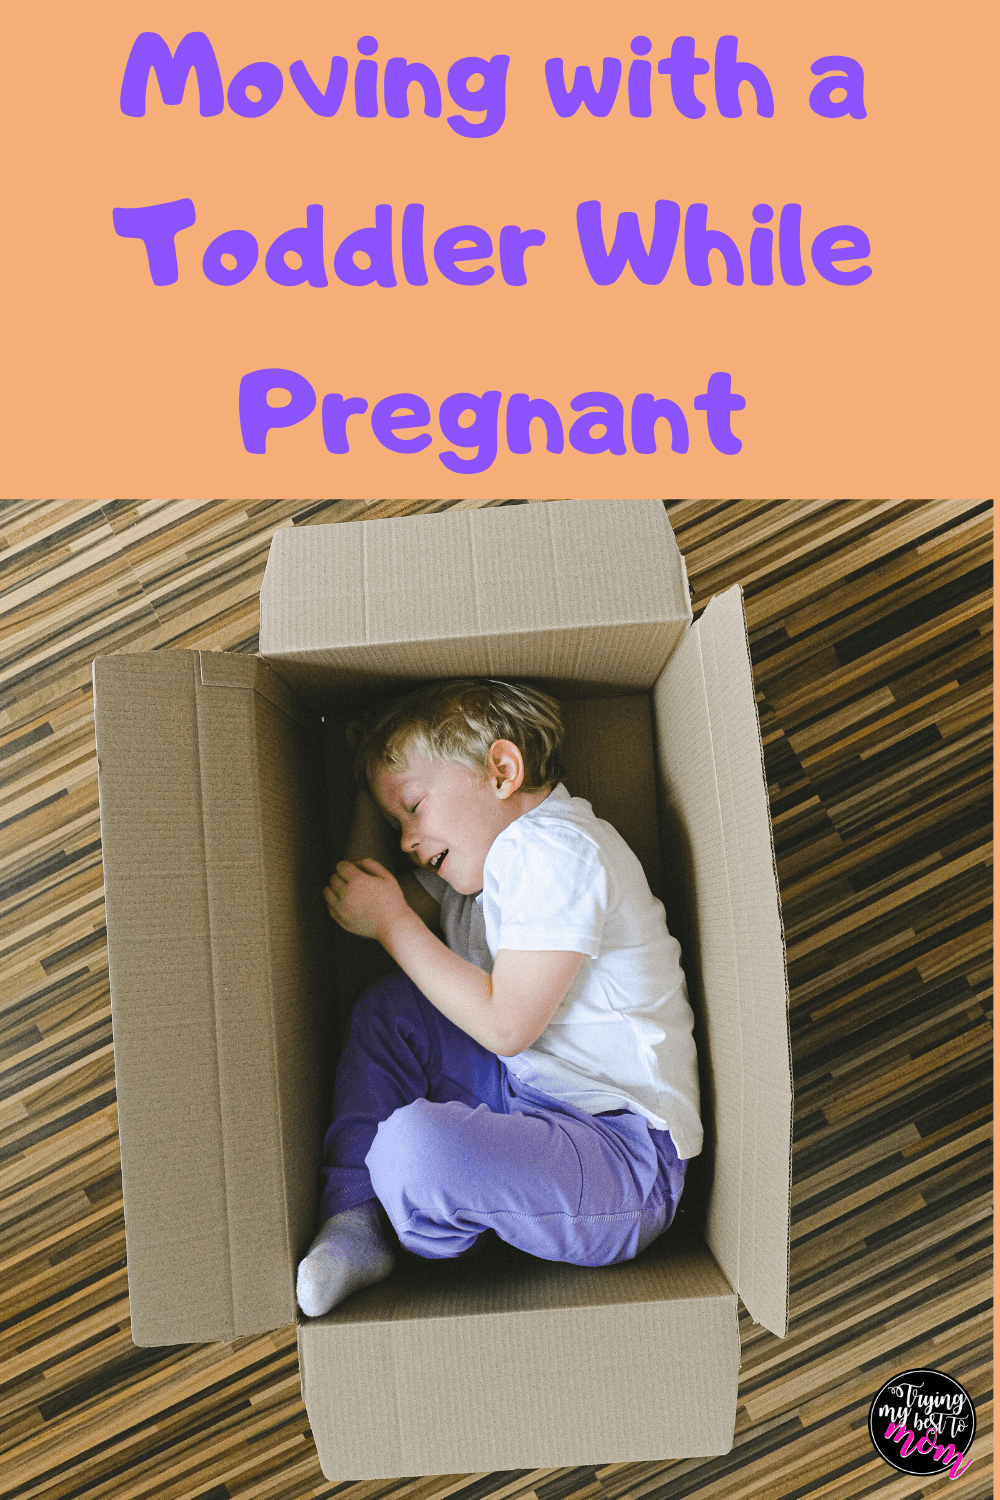 Moving with a Toddler while Pregnant